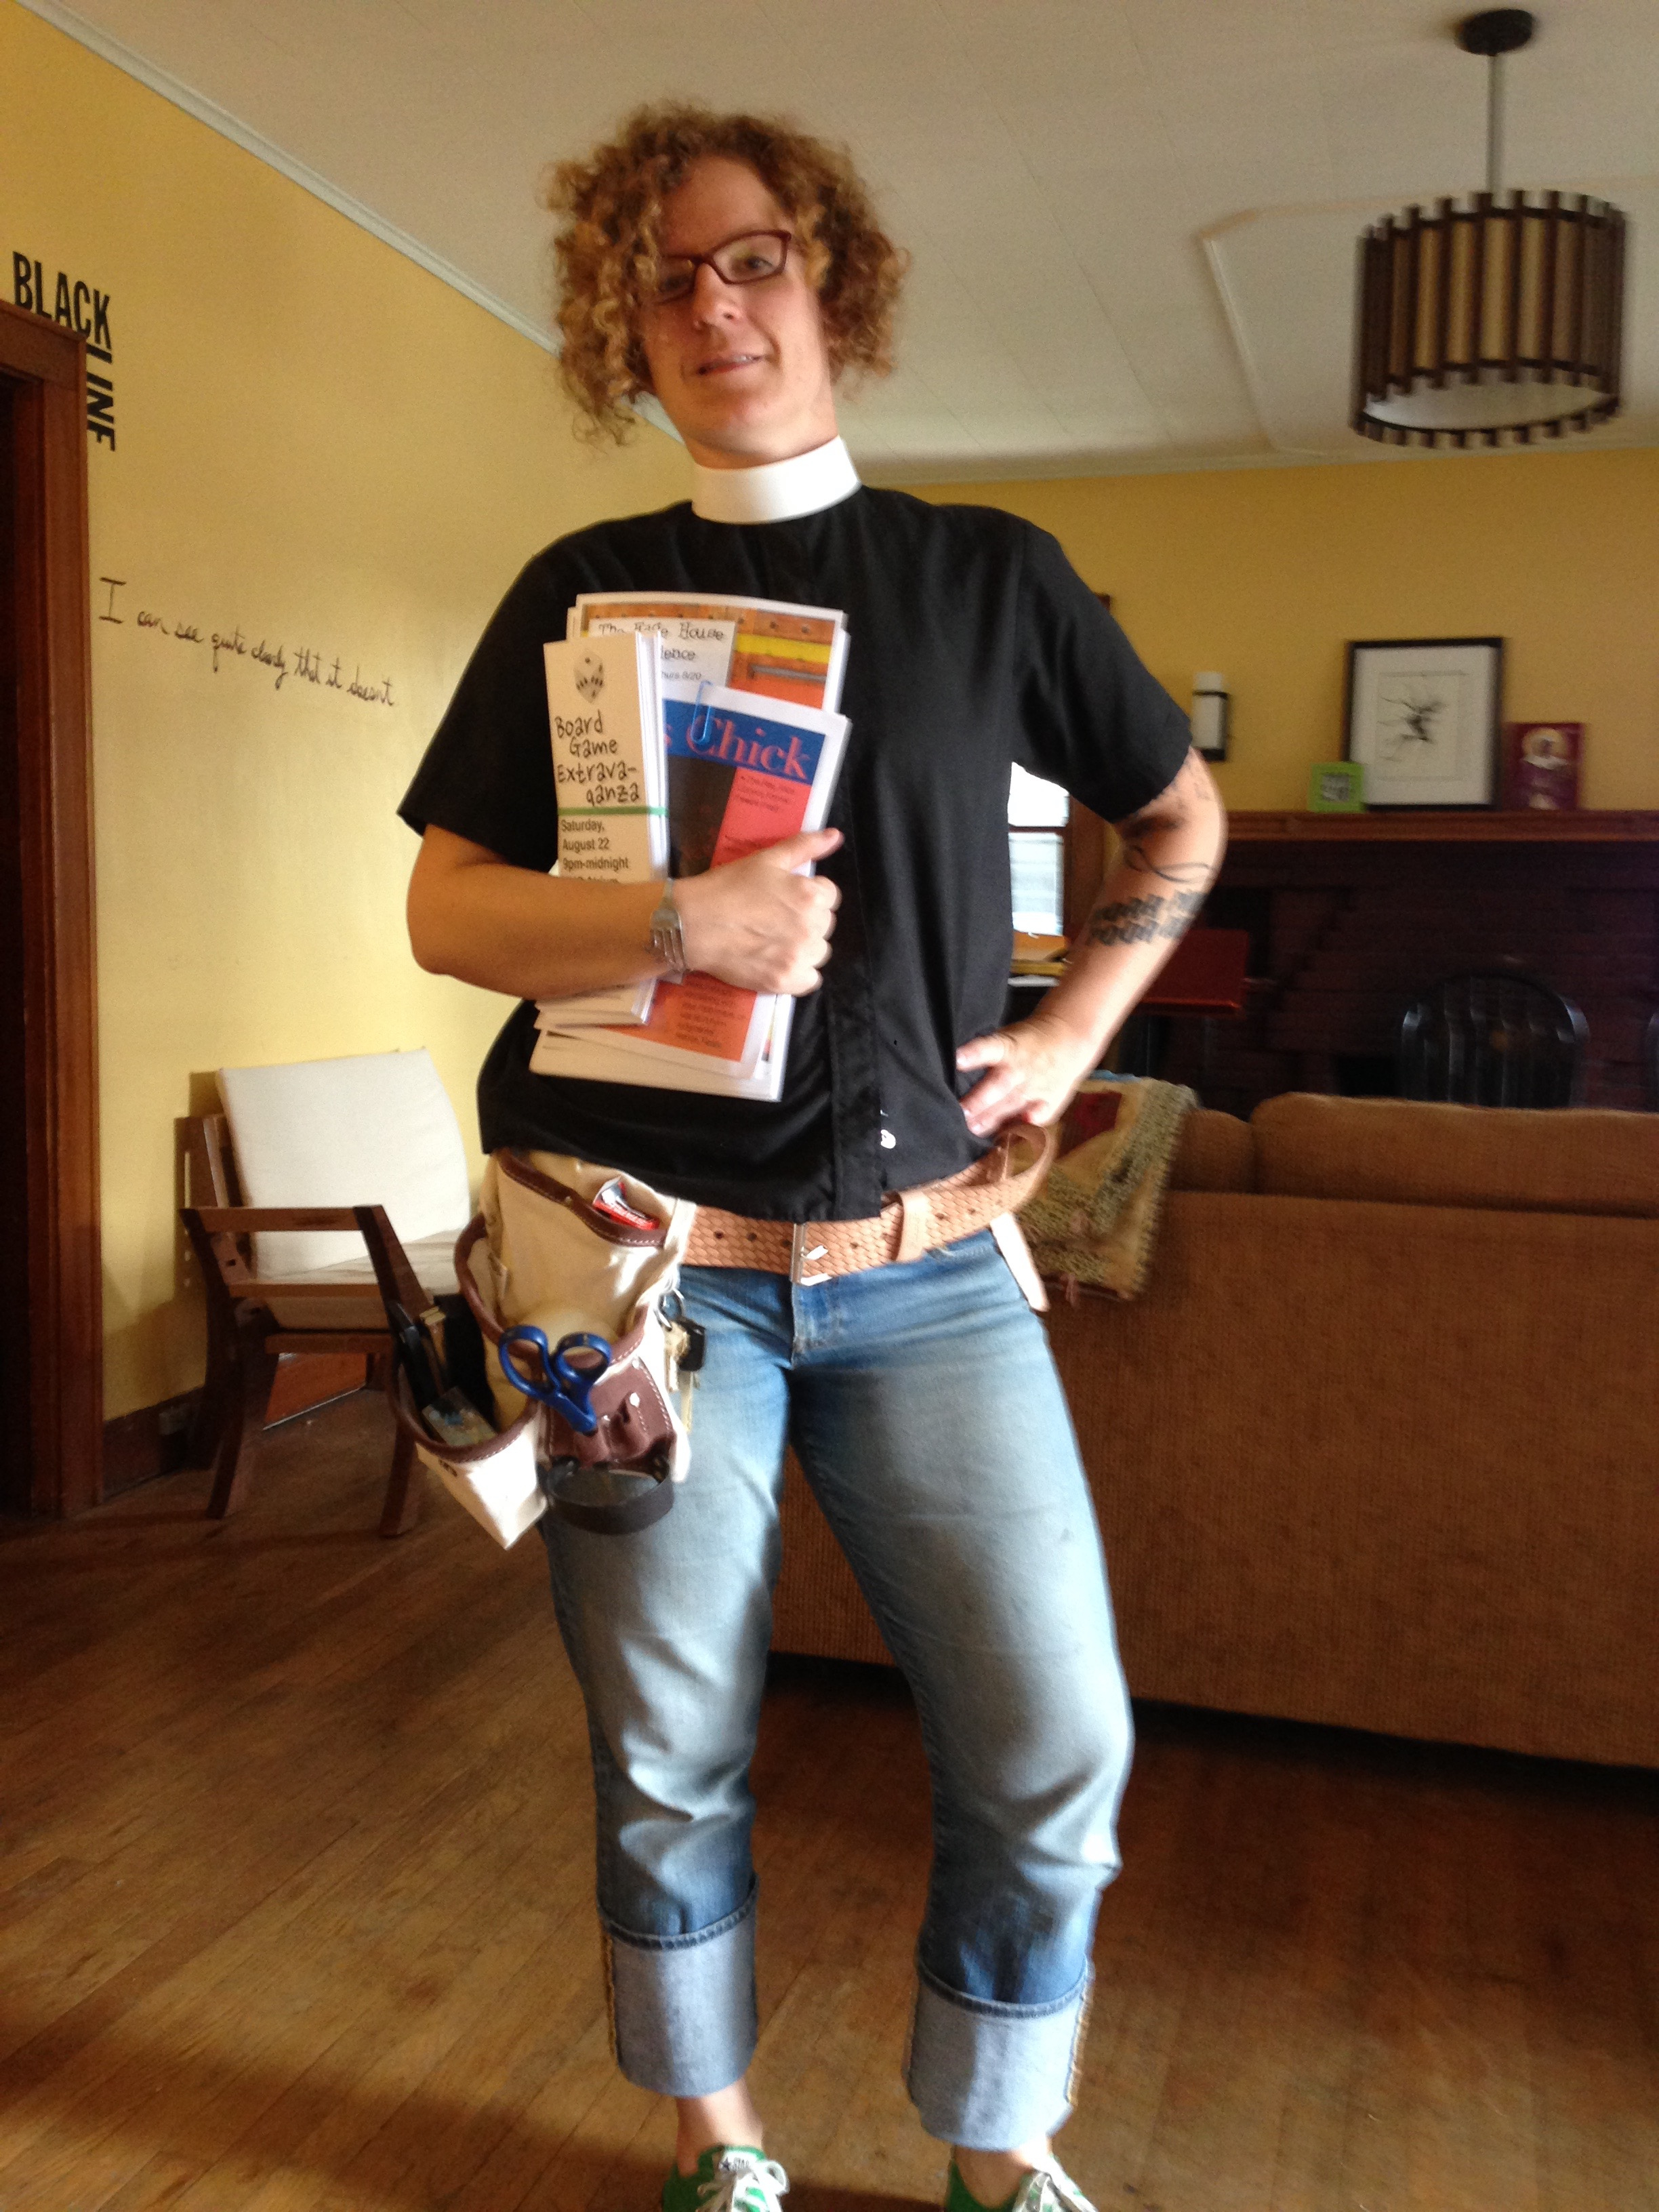 Alice's flyering outfit